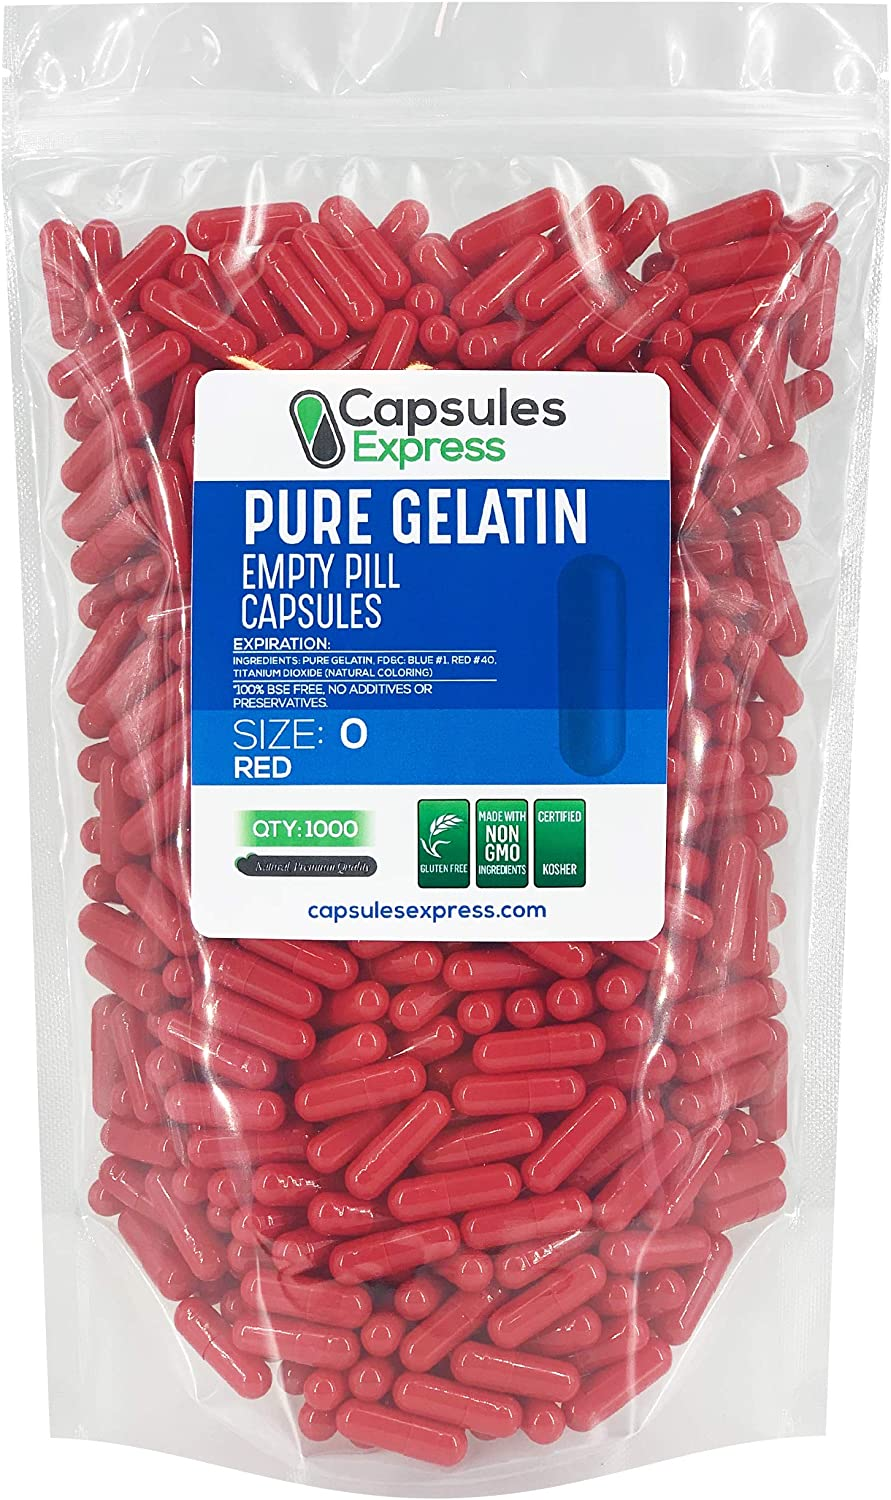 Capsules Express- Size 0 Red Empty Gelatin Capsules 1000 Count - Kosher and Halal - Pure Gelatin Pill Capsule - DIY Powder Filling